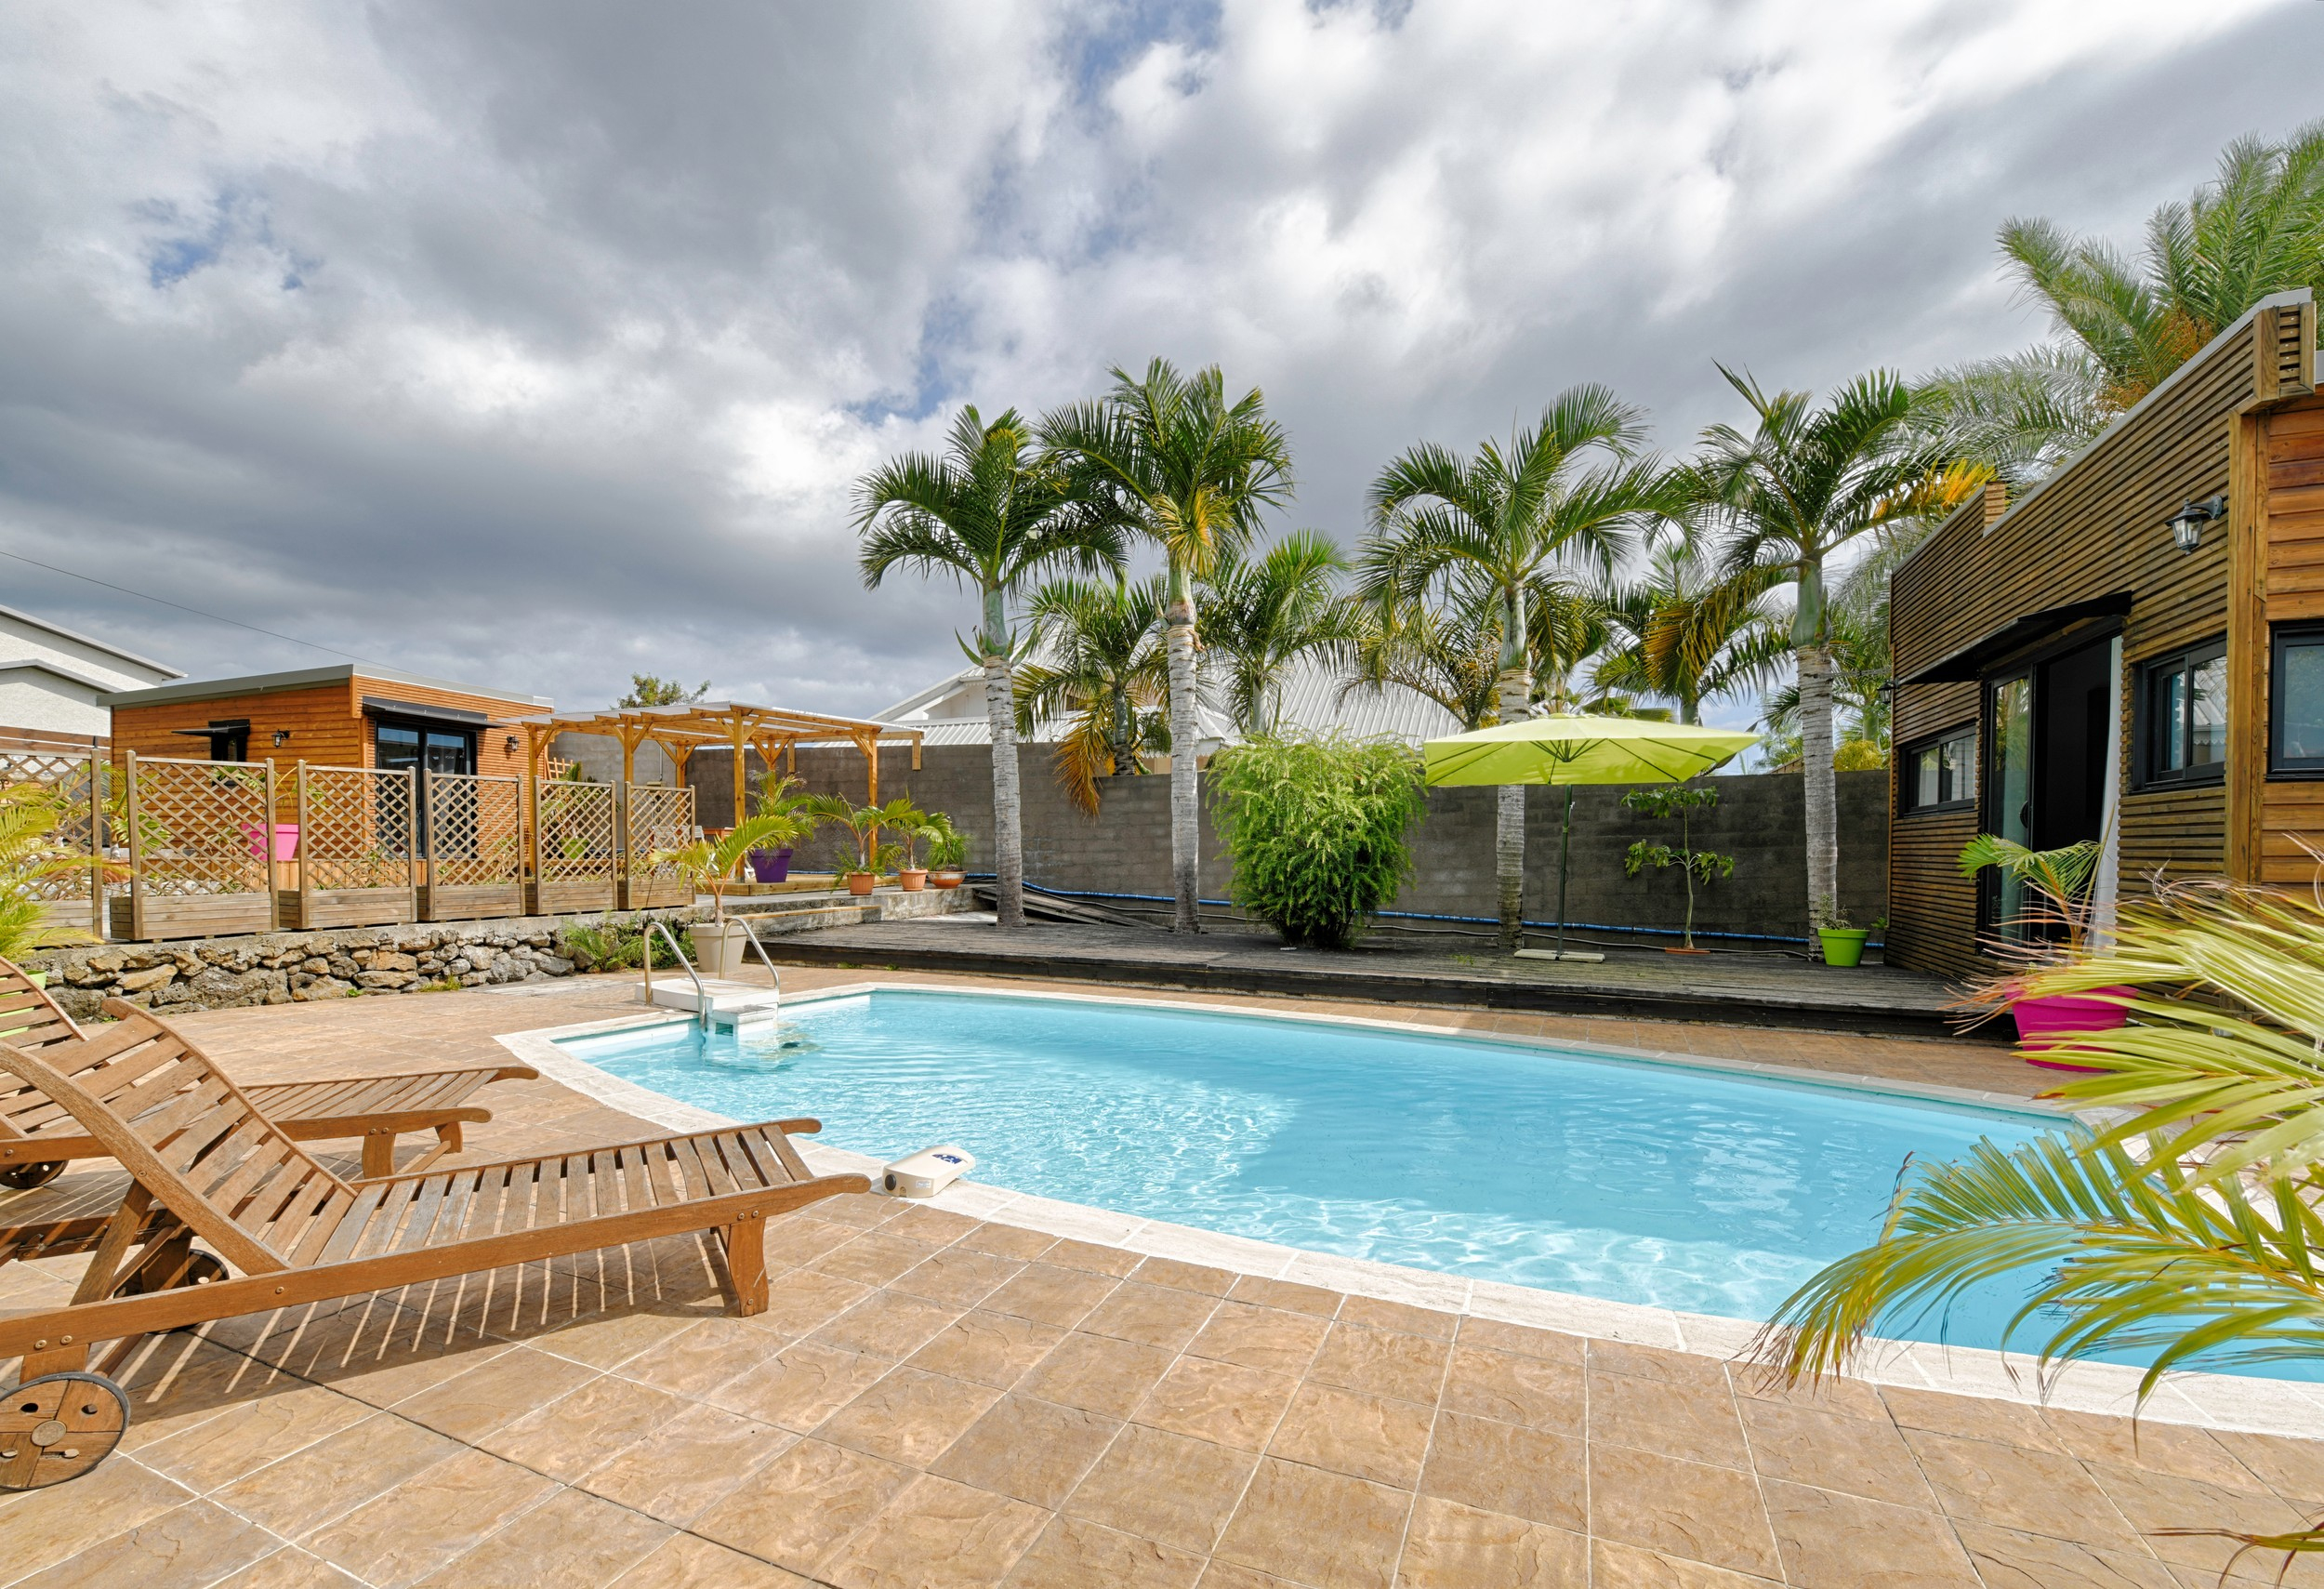 Reunion Island Holiday Rental In St Louis At 15Min From The Beach destiné Piscine St Louis